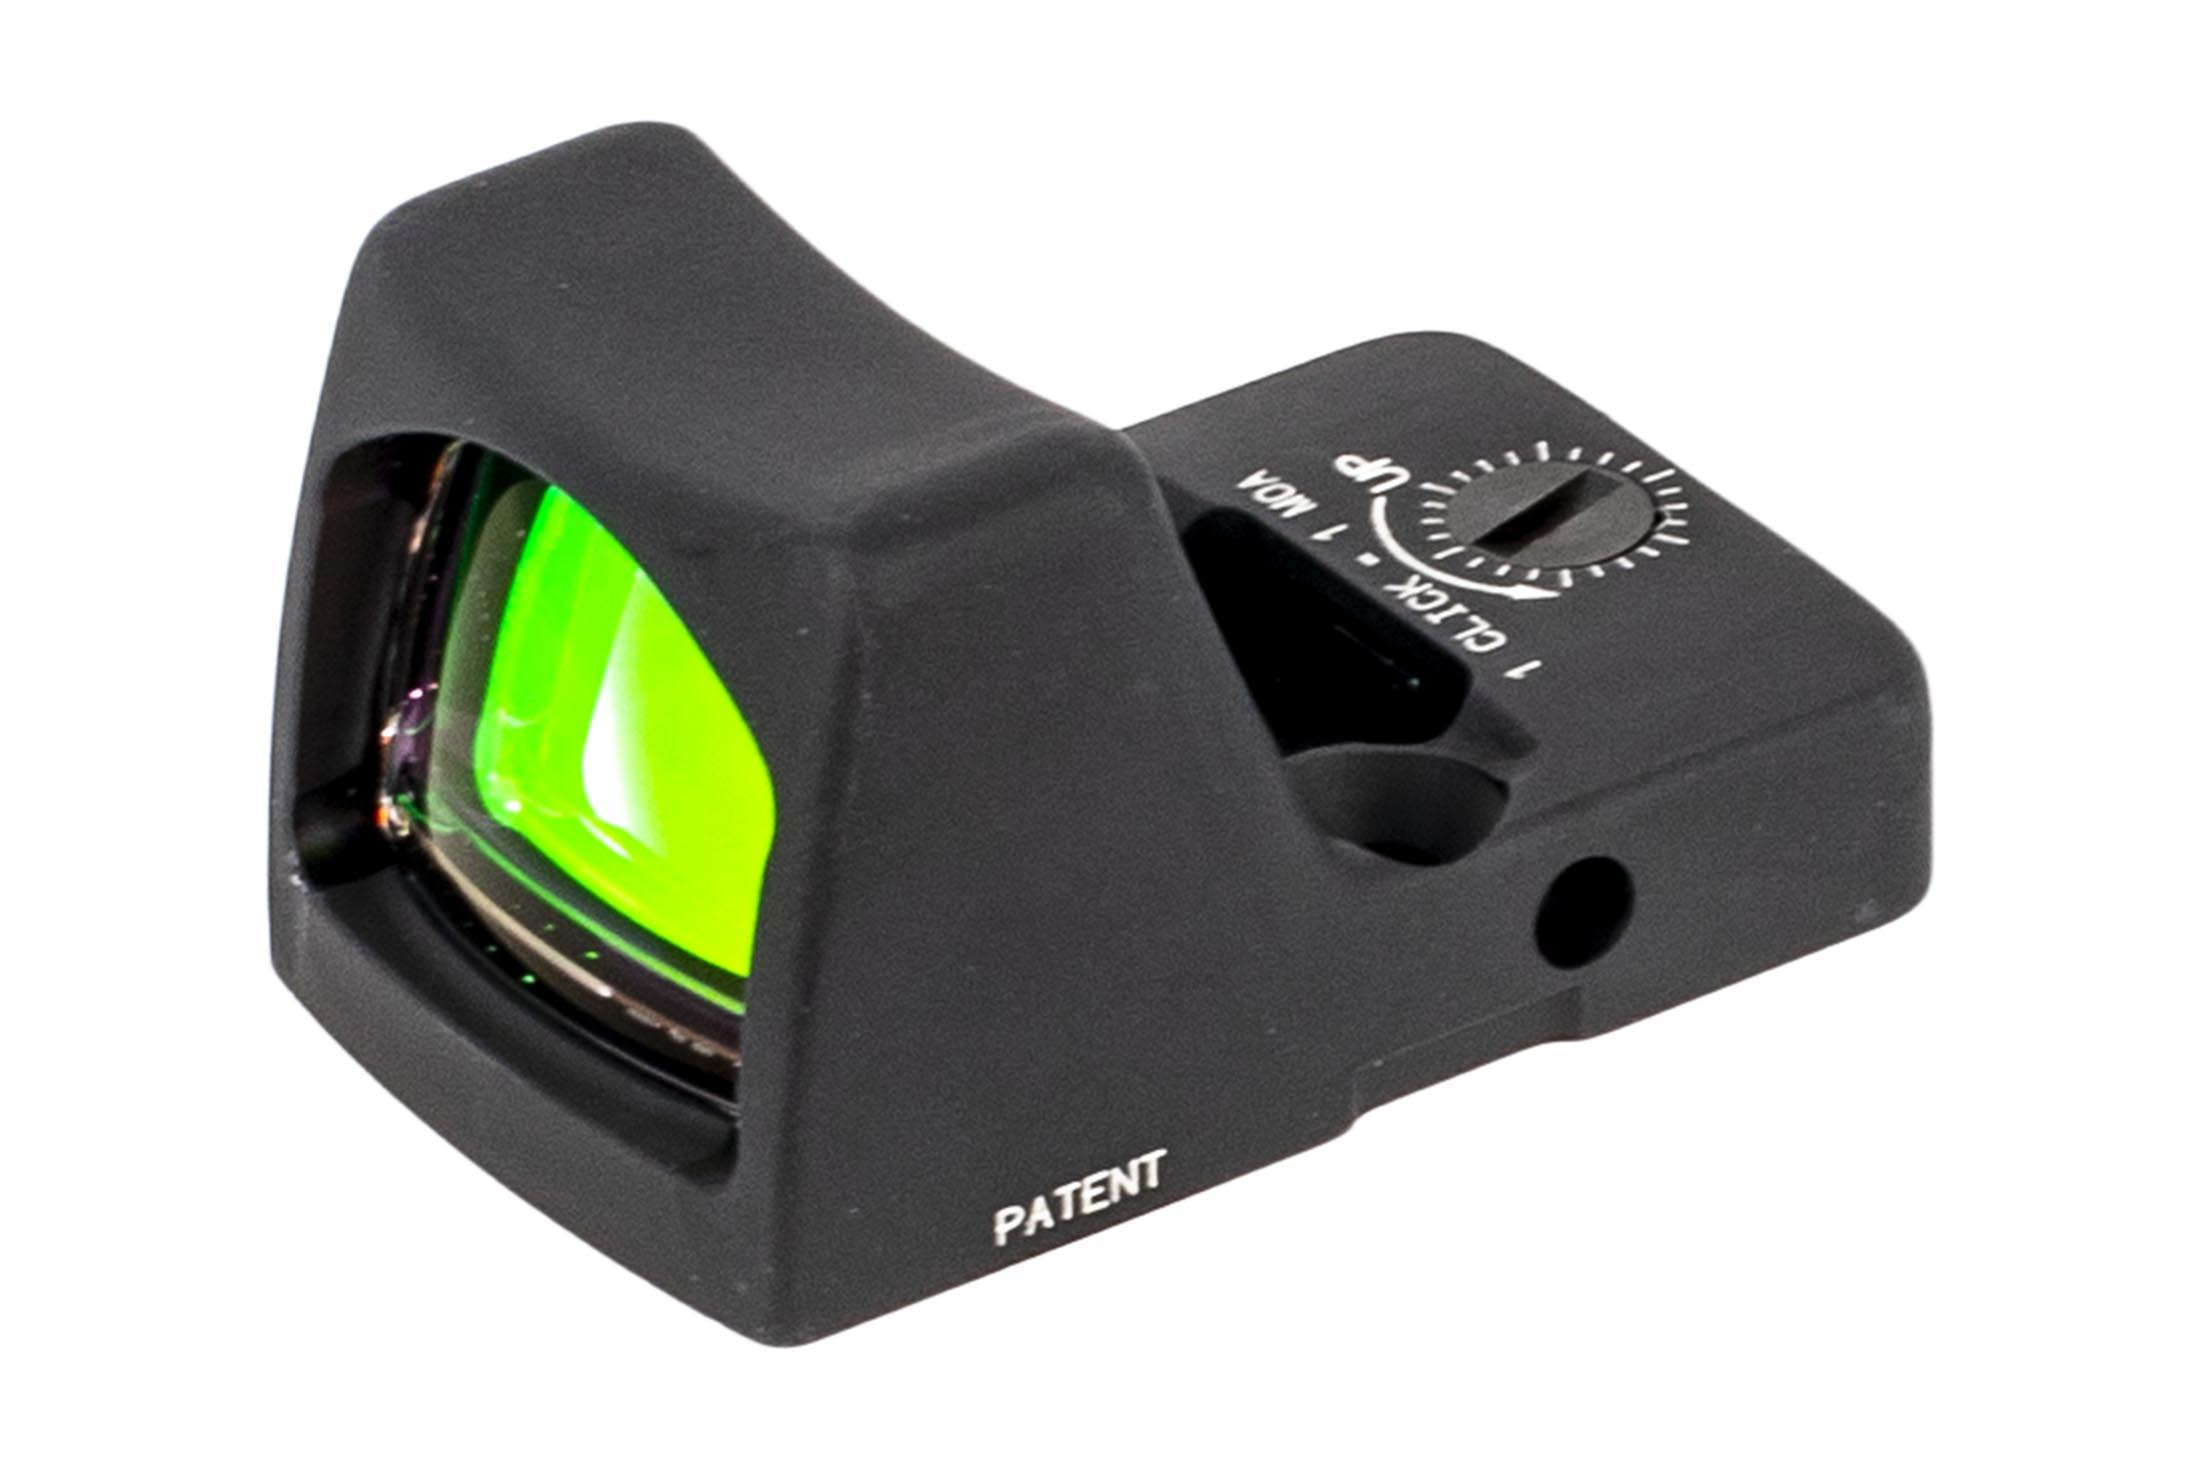 Trijicon 6.5 MOA RMR Type 2 Adjustable LED sniper red dot sight is designed to survive punishing handgun slide use with a grey anodized finish